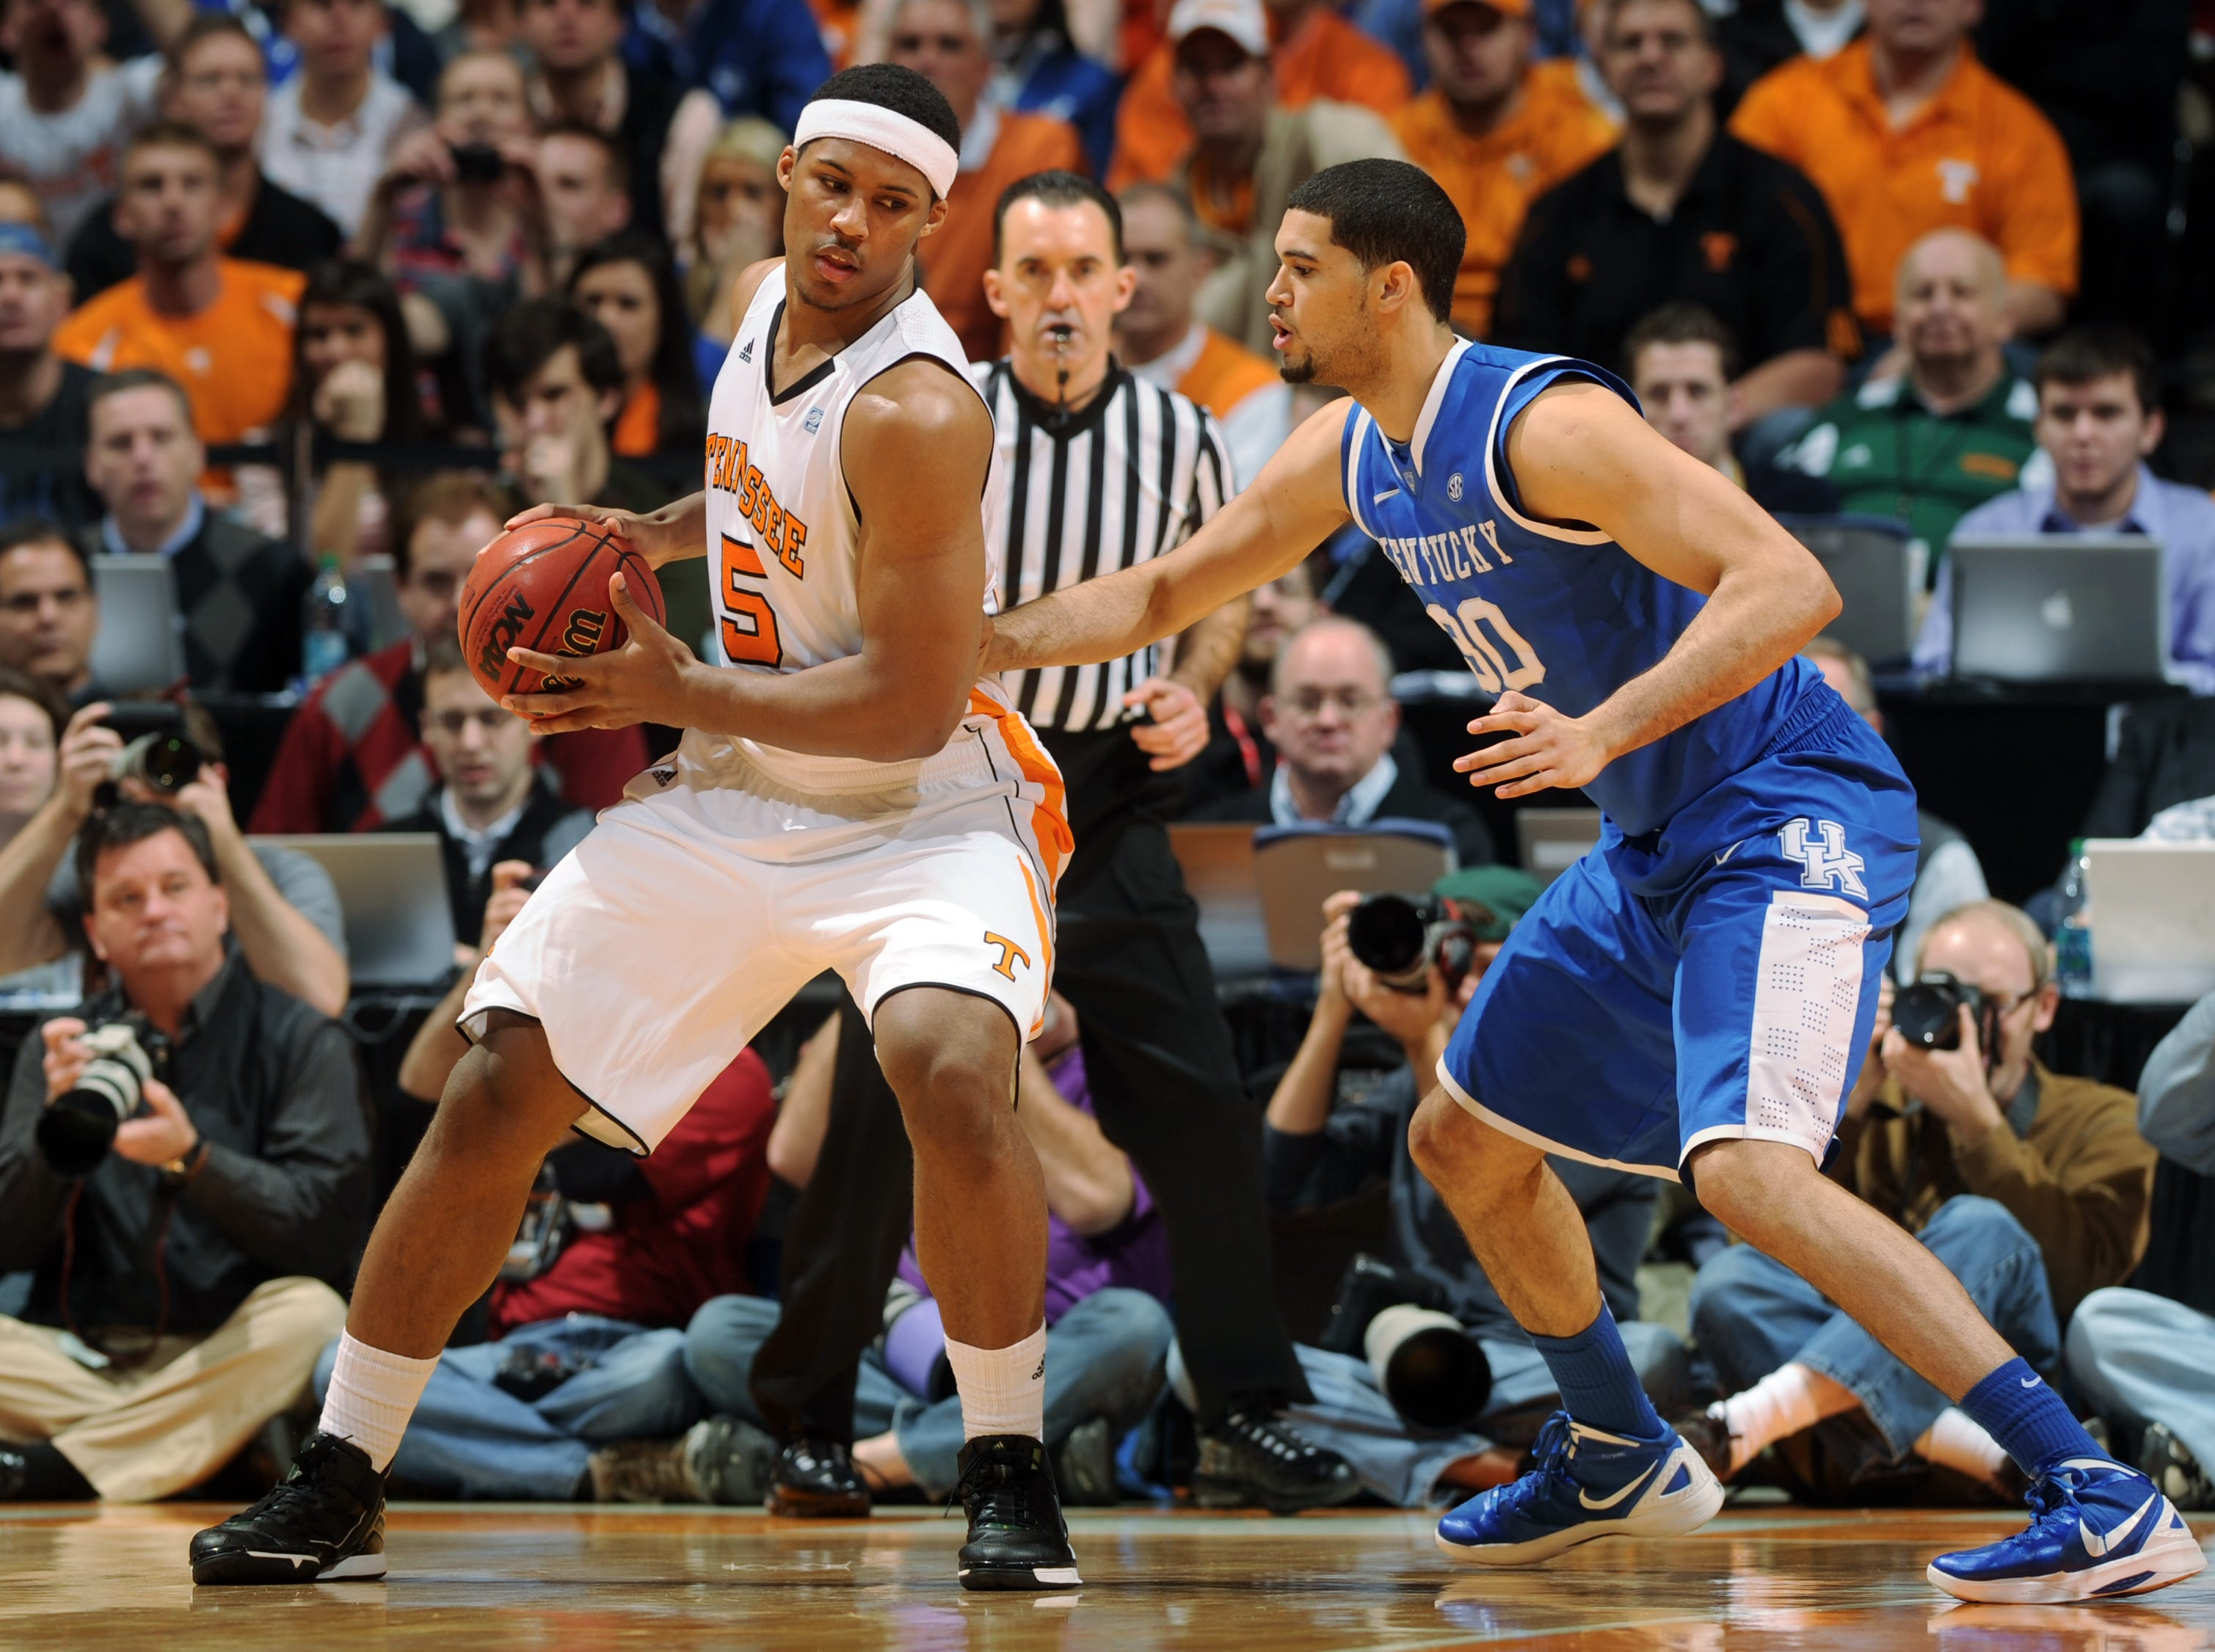 Tennessee forward Jarnell Stokes (5) moves the ball as Kentucky forward Eloy Vargas (30) defends at Thompson-Boling Arena in Saturday, Jan. 14, 2012.  Kentucky defeated Tennessee 65-62.